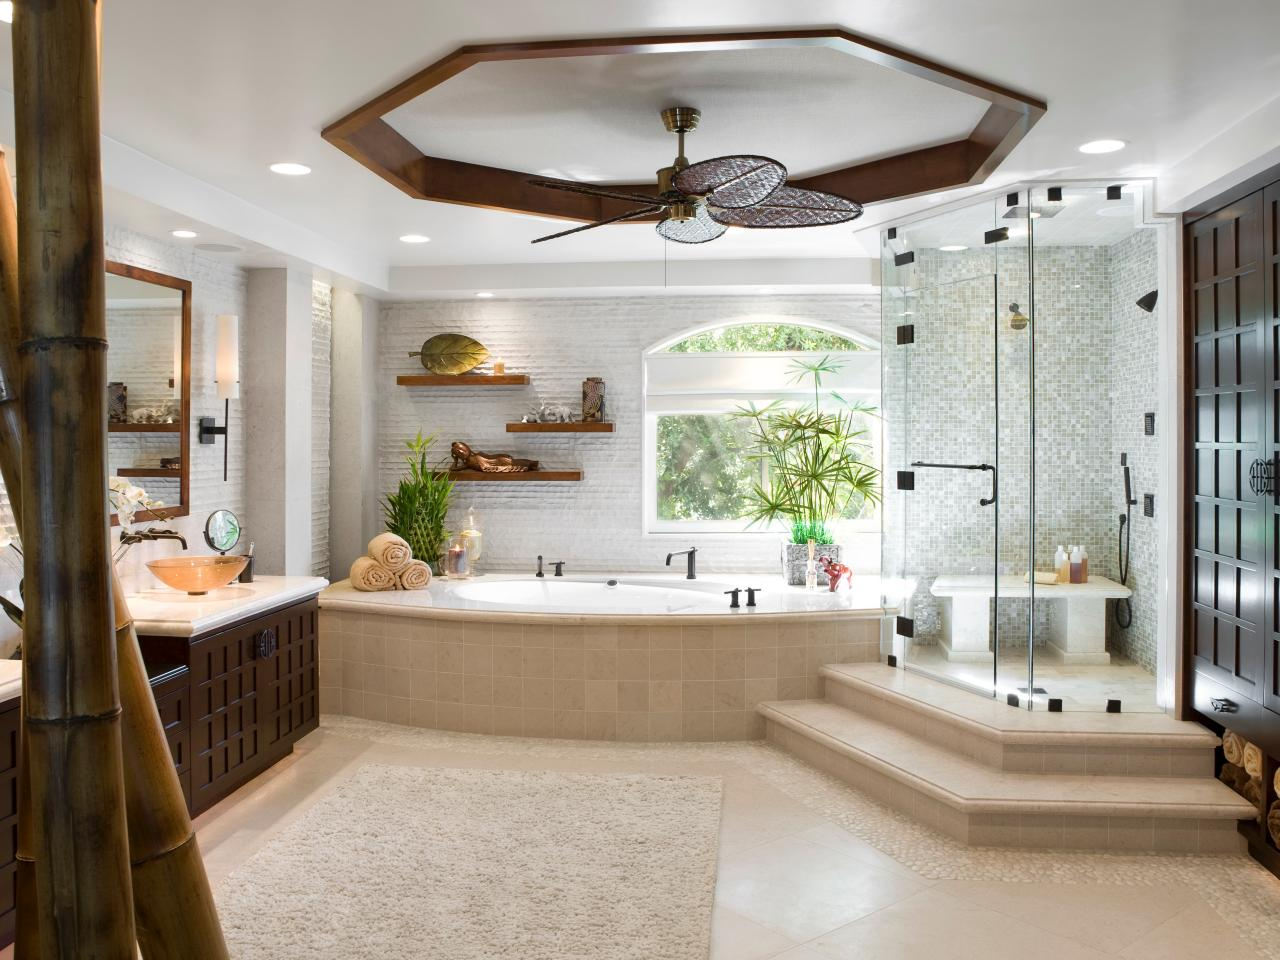 Pictures Of Luxury Bathrooms Best Luxury Bathrooms  Hgtv Inspiration Design